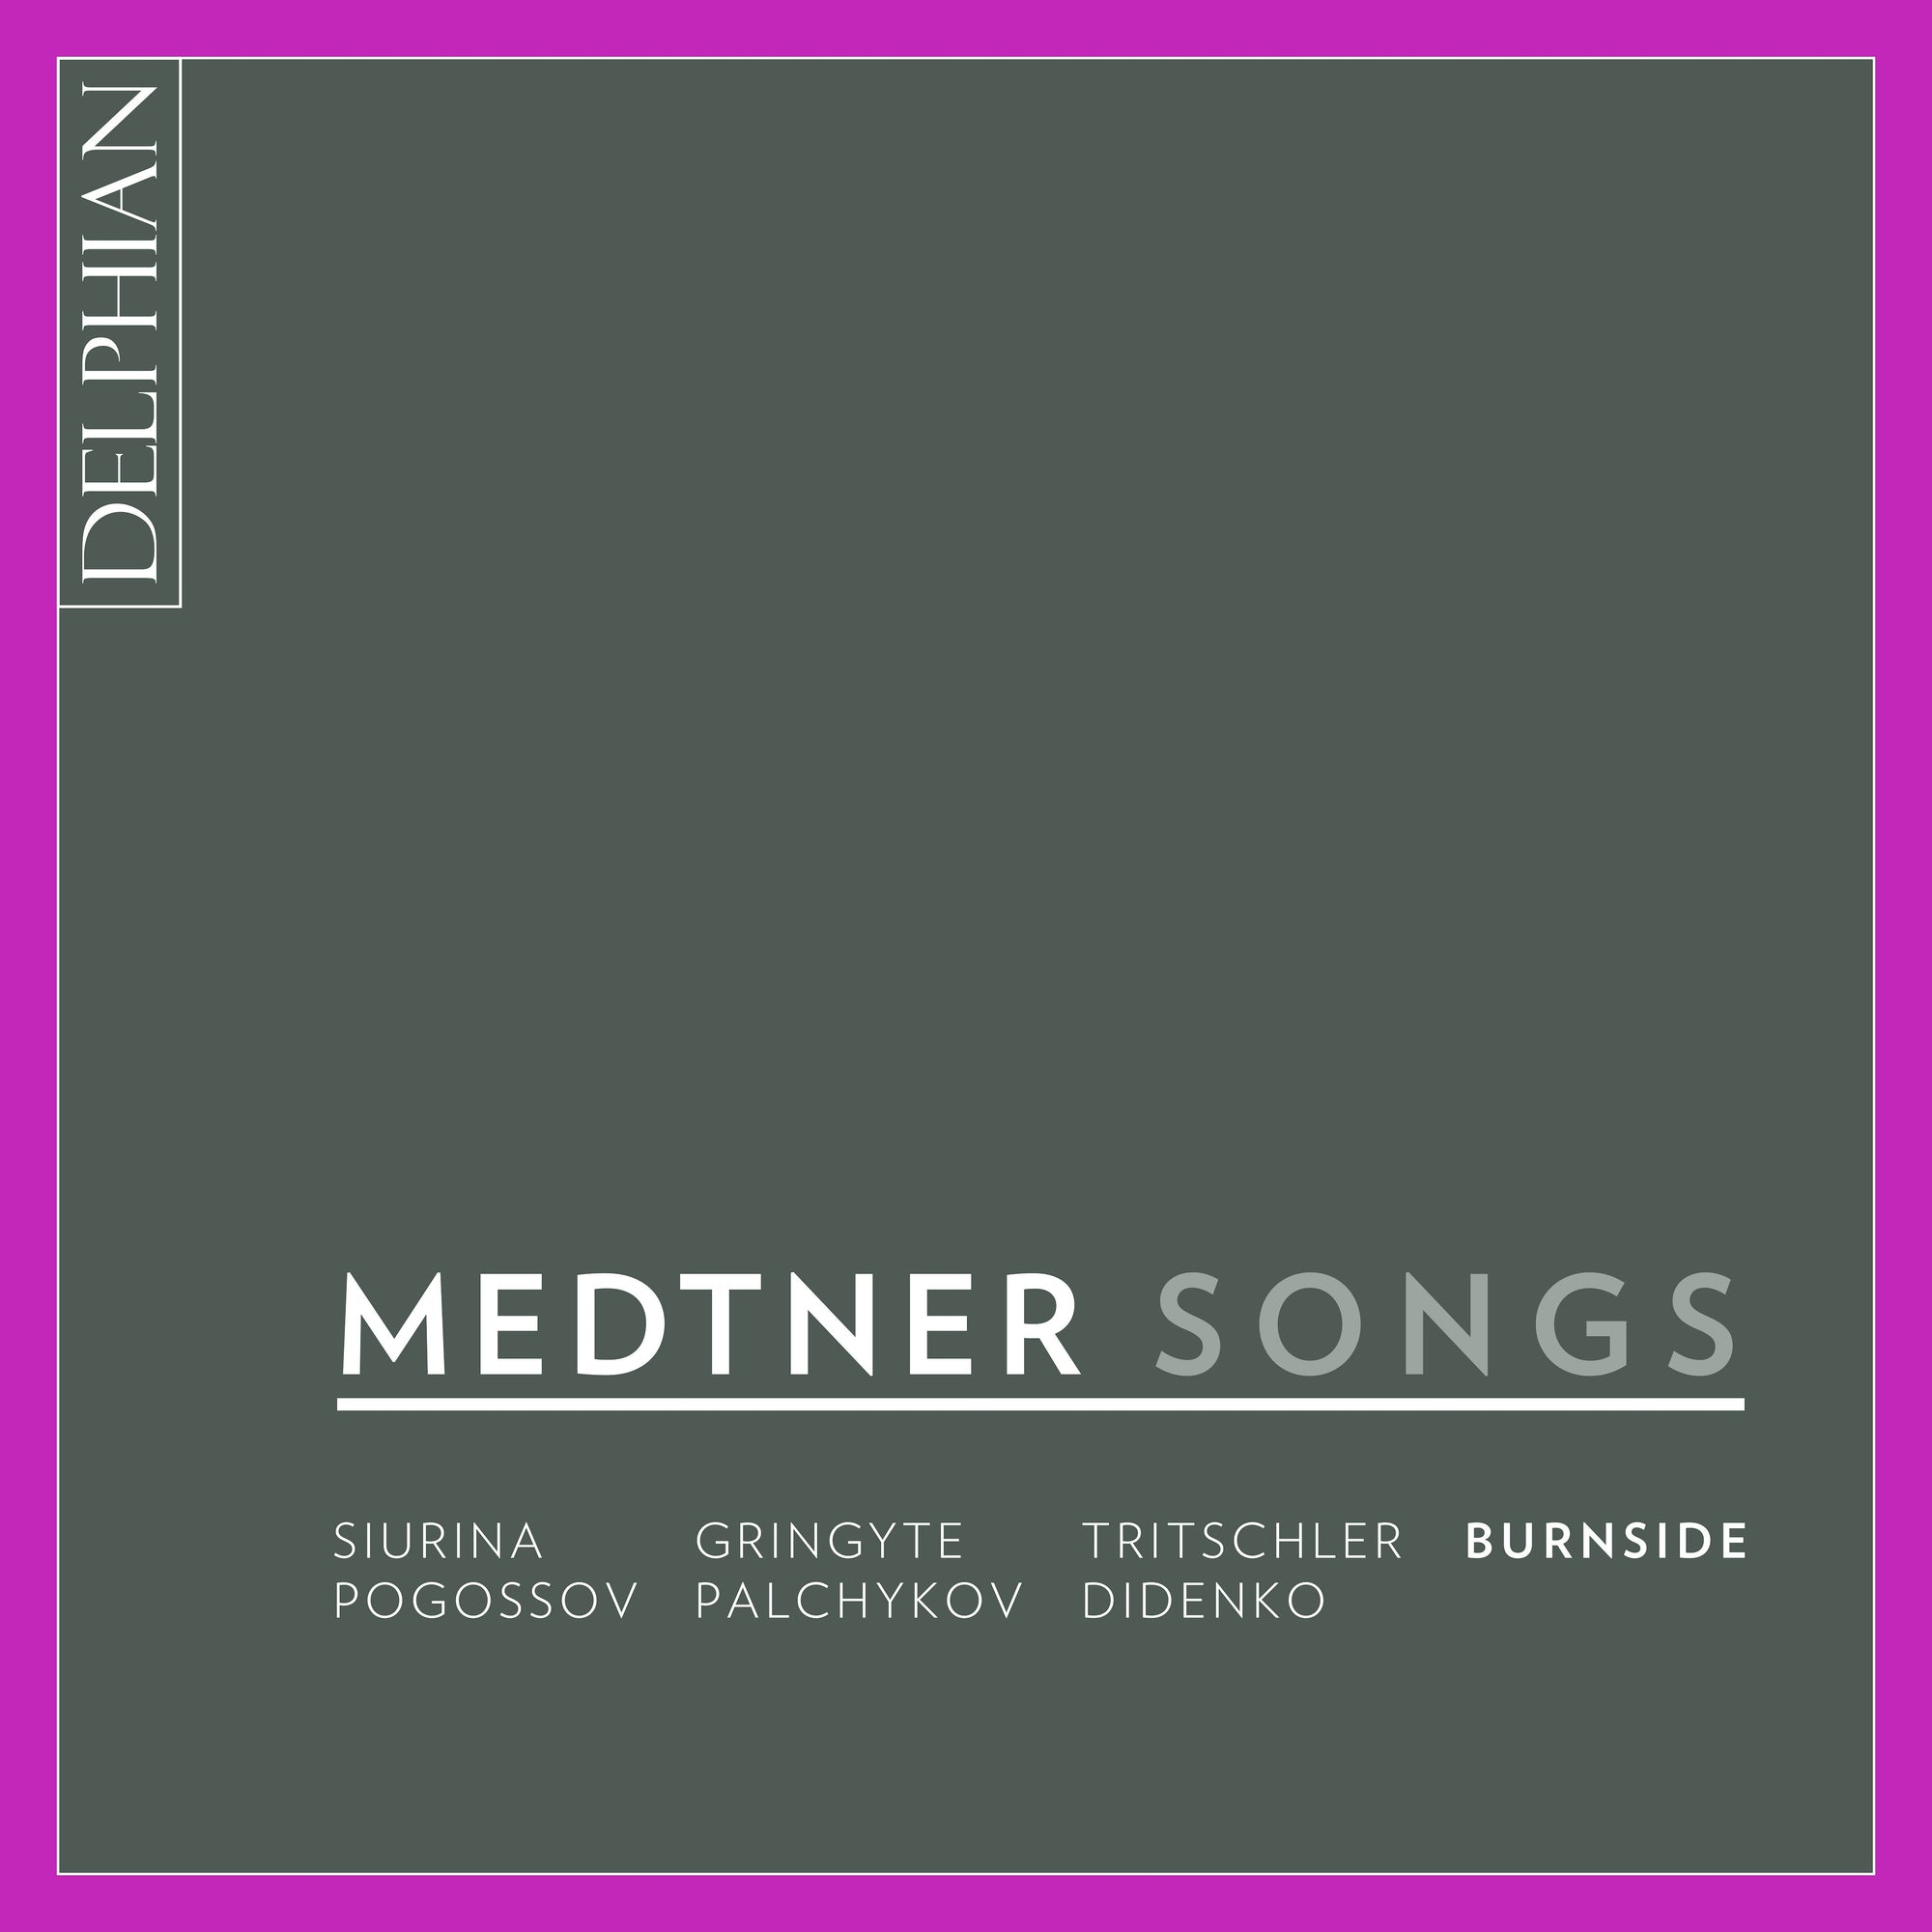 Medtner: Songs (2CDs) CD Delphian Records